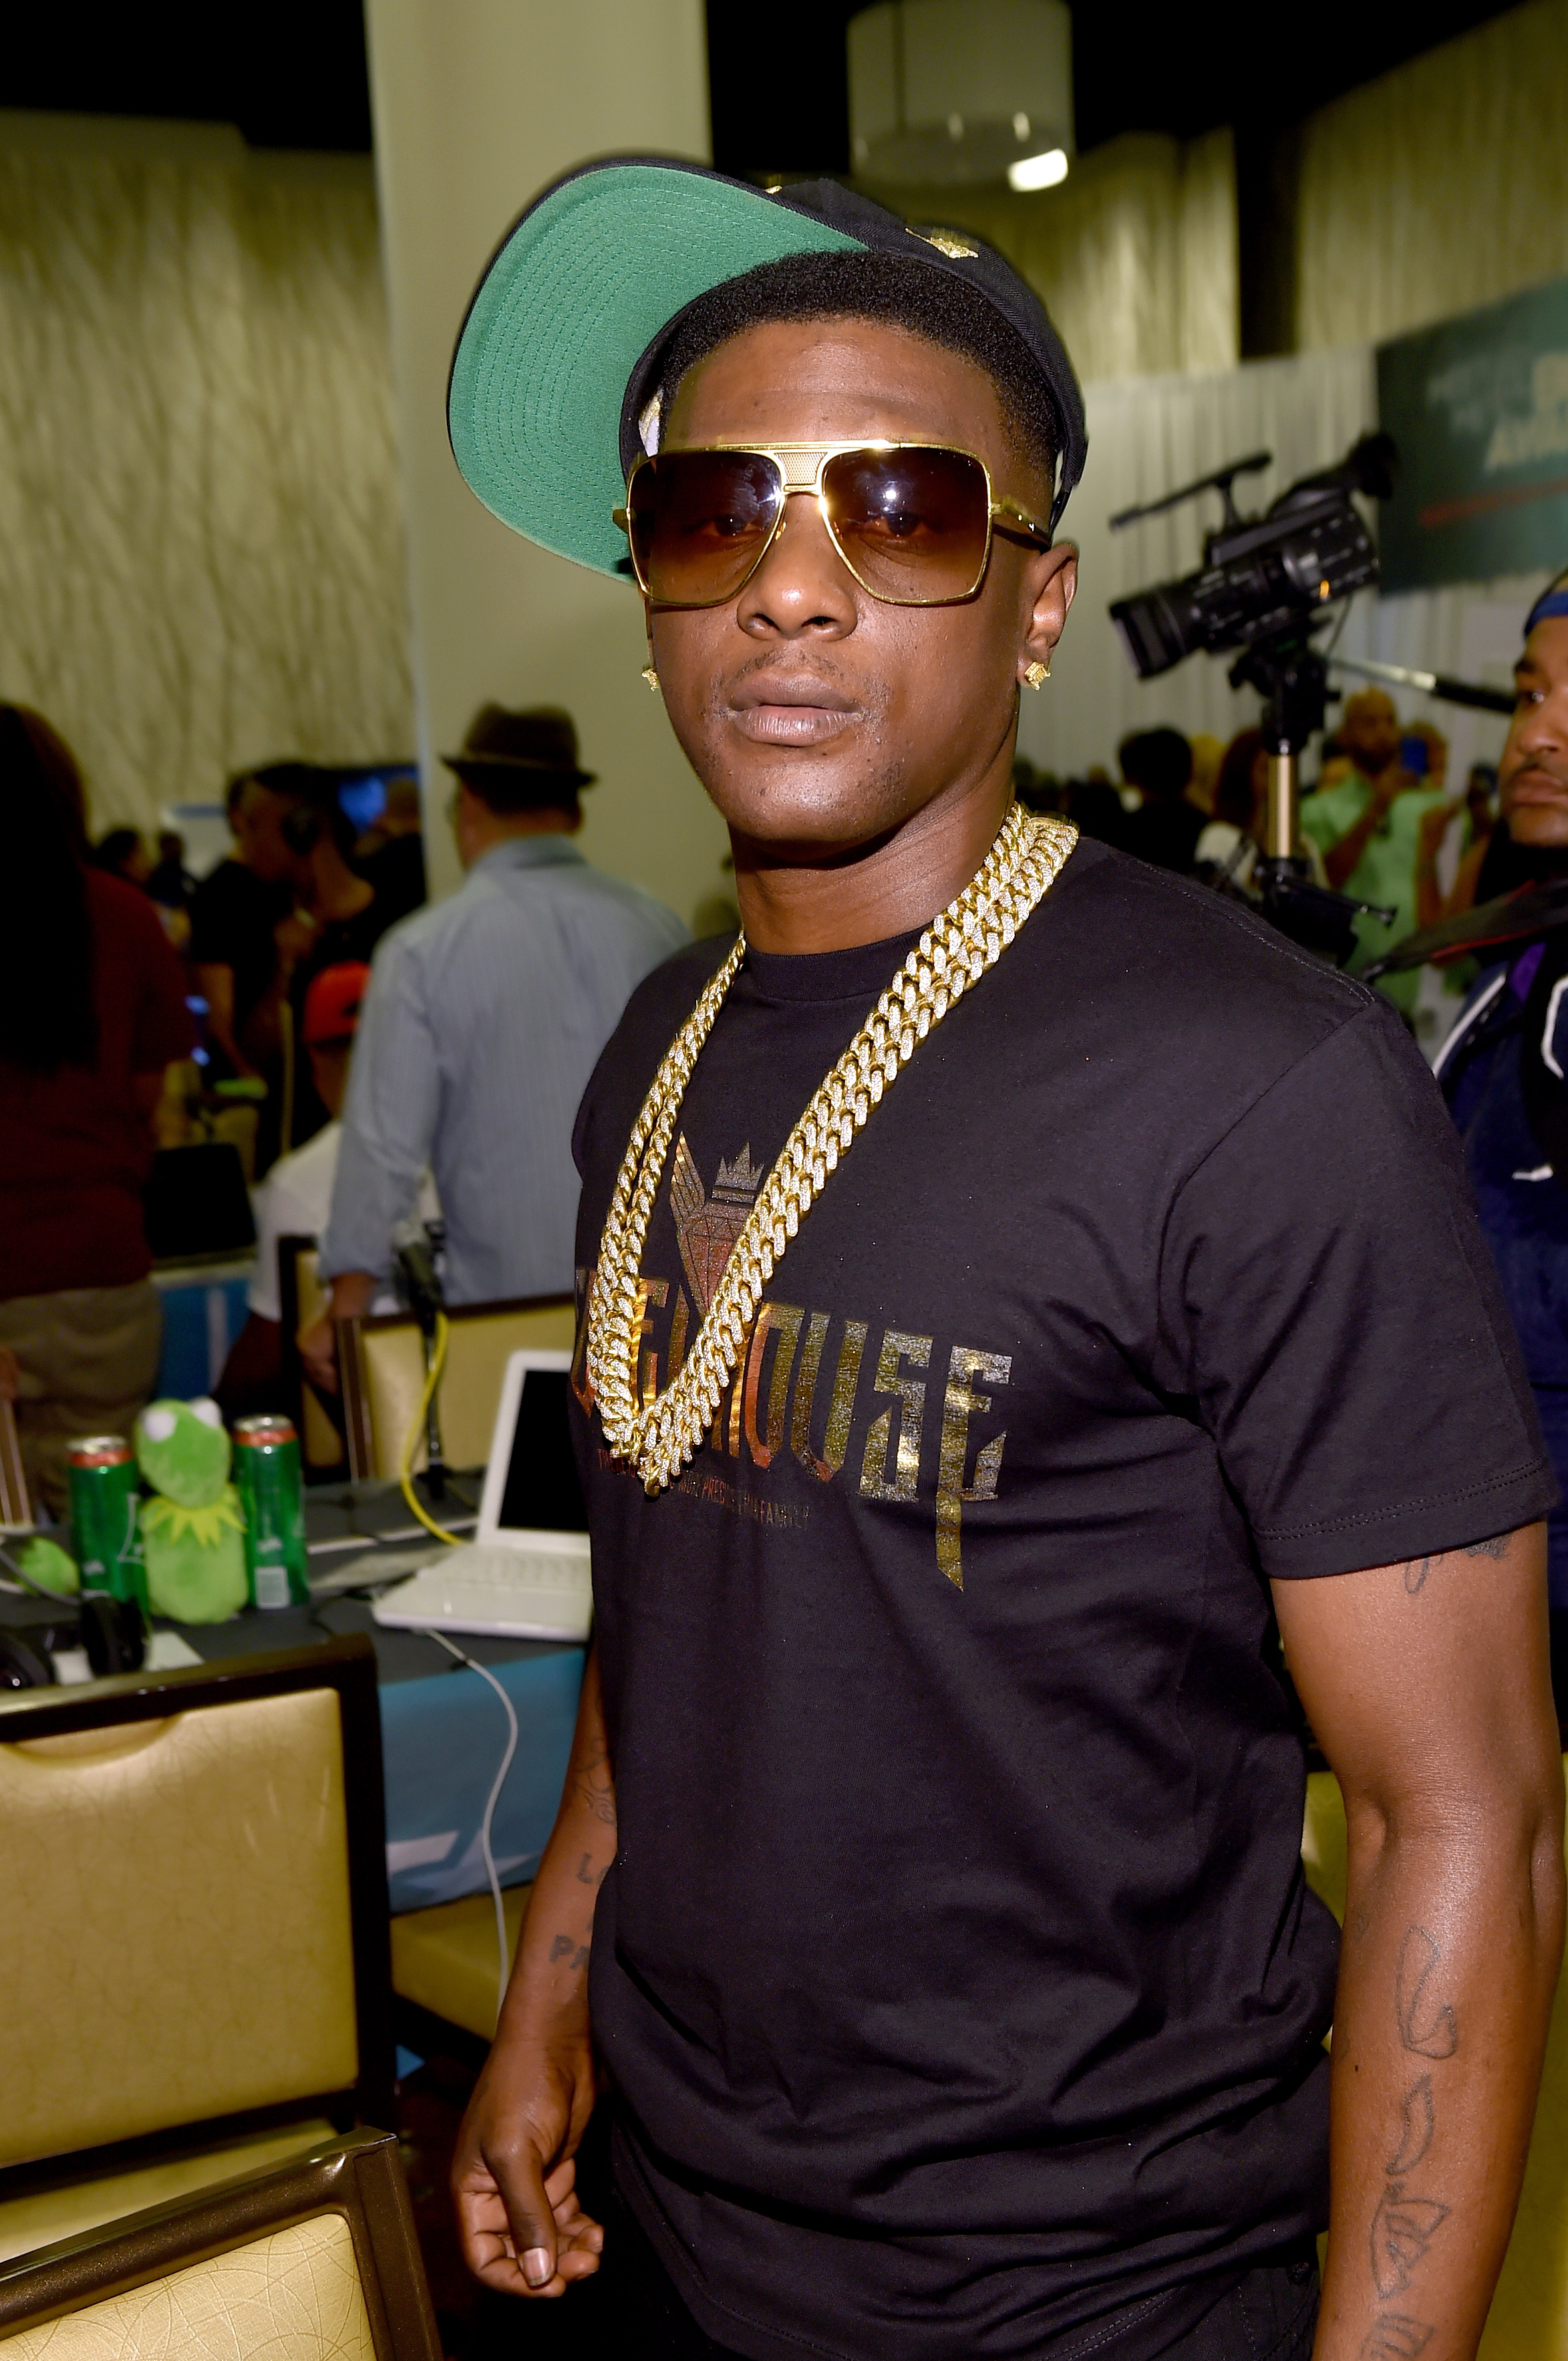 Lil Boosie Arrested In Georgia On Drug And Weapon Possession Charges